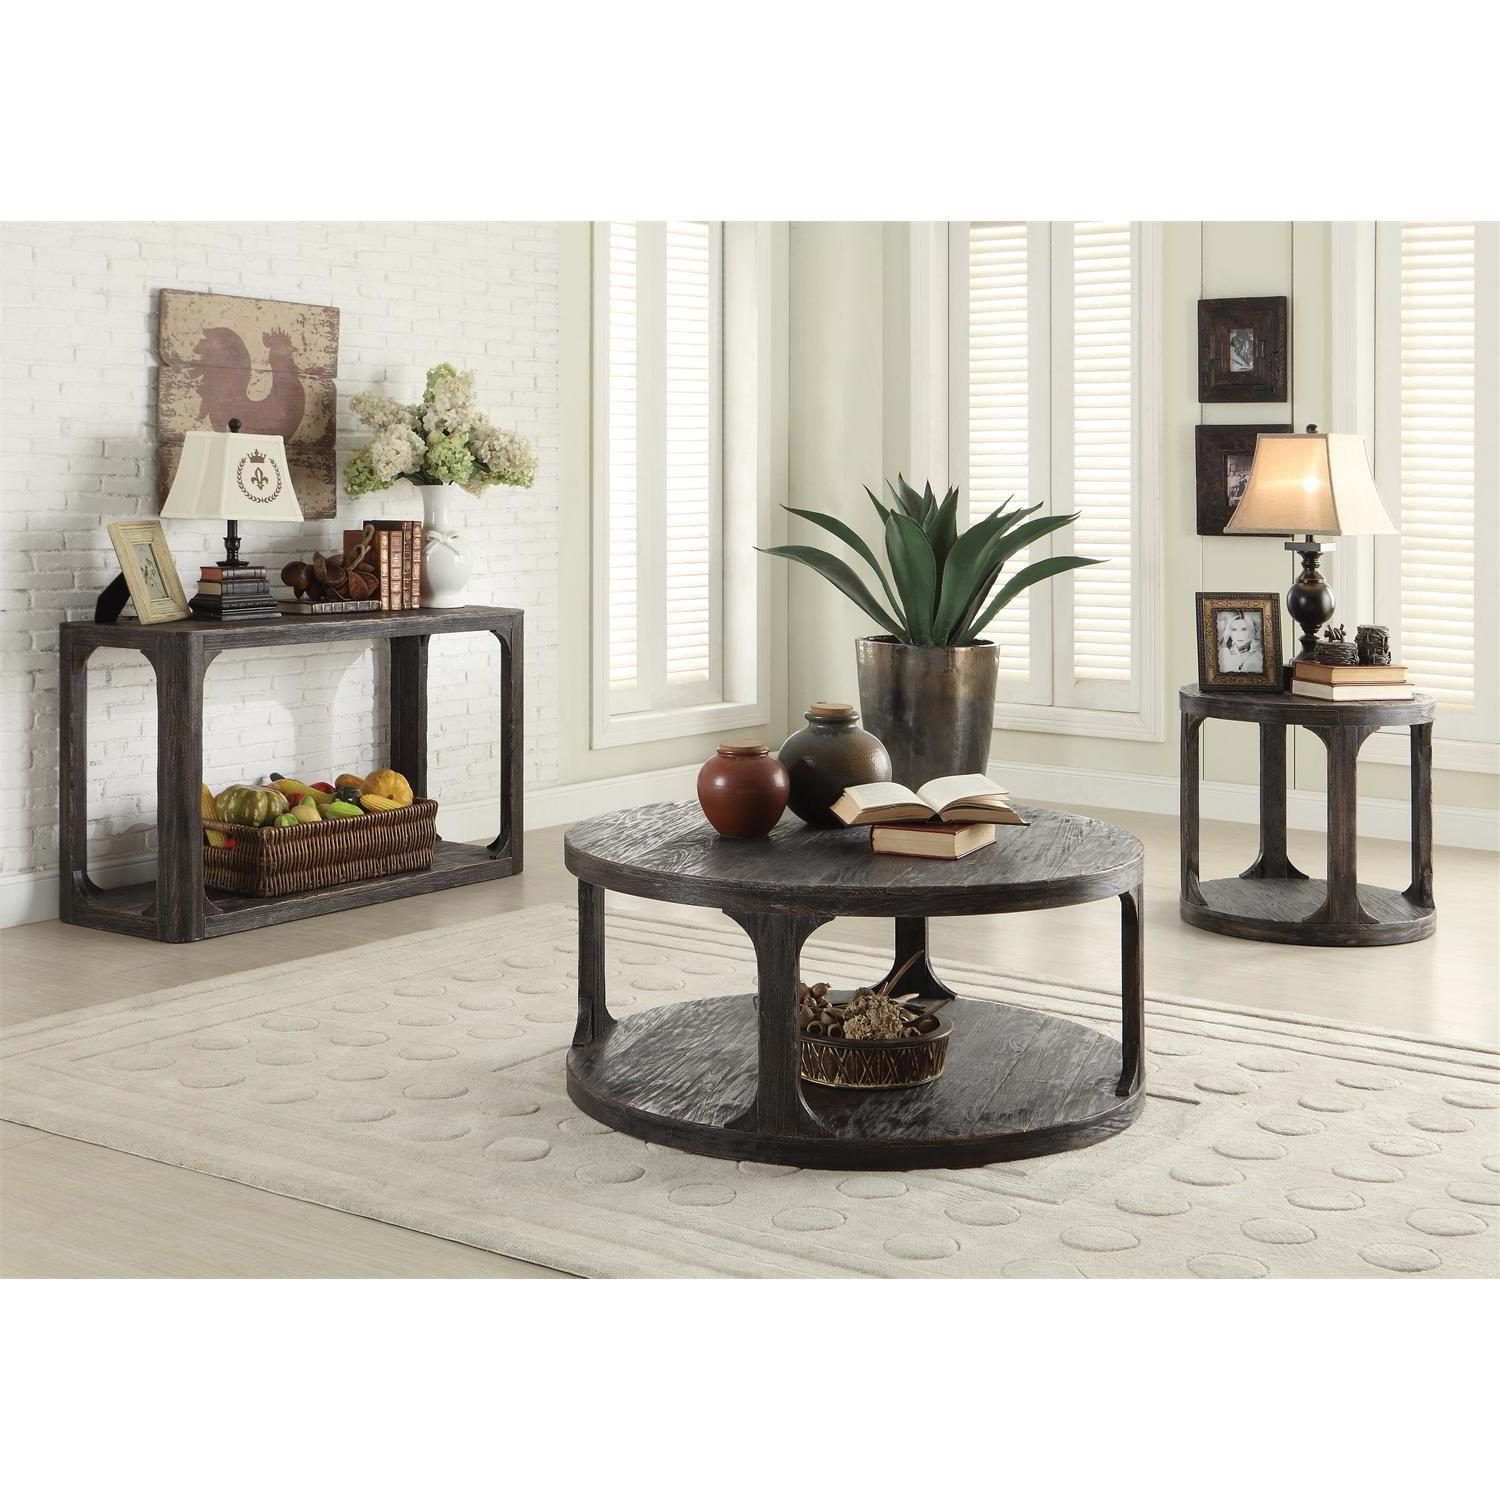 bellagio coffee table riverside frontroom furnishings collection round pinebrook accent burlap tablecloth with bbq built two nesting tables lamps plus chandeliers tama drum throne